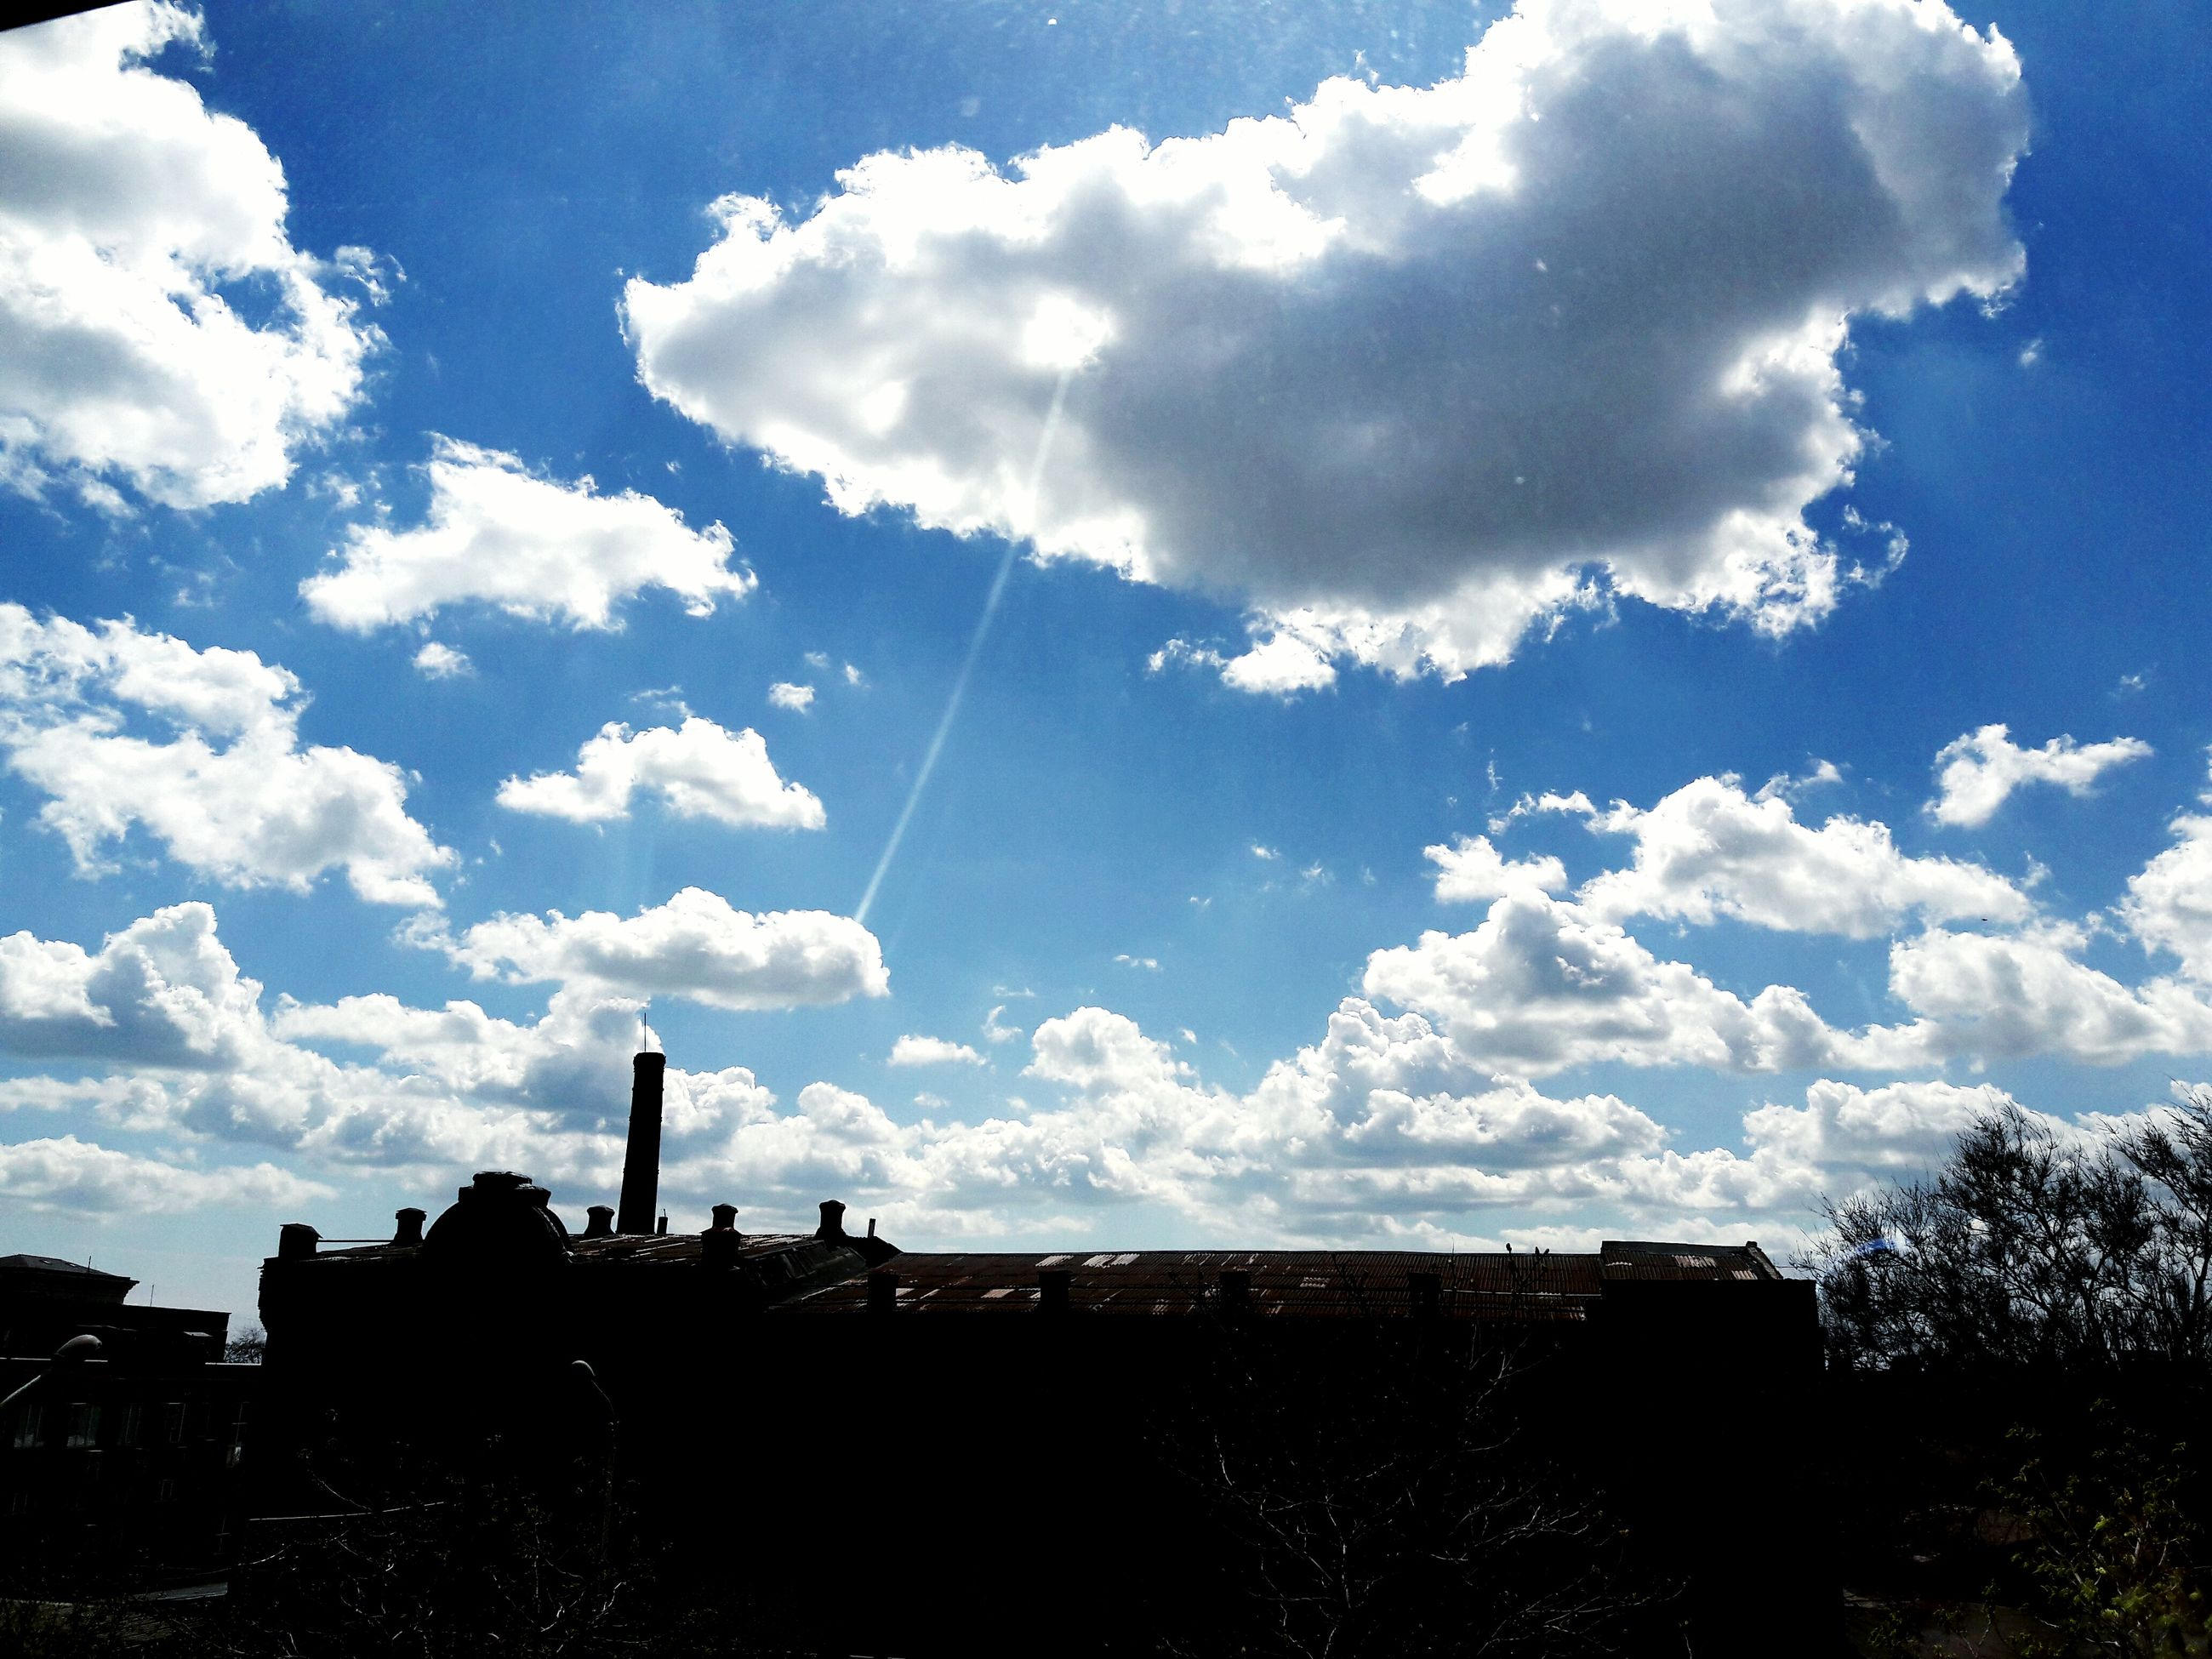 cloud - sky, sky, low angle view, outdoors, no people, day, scenics, nature, beauty in nature